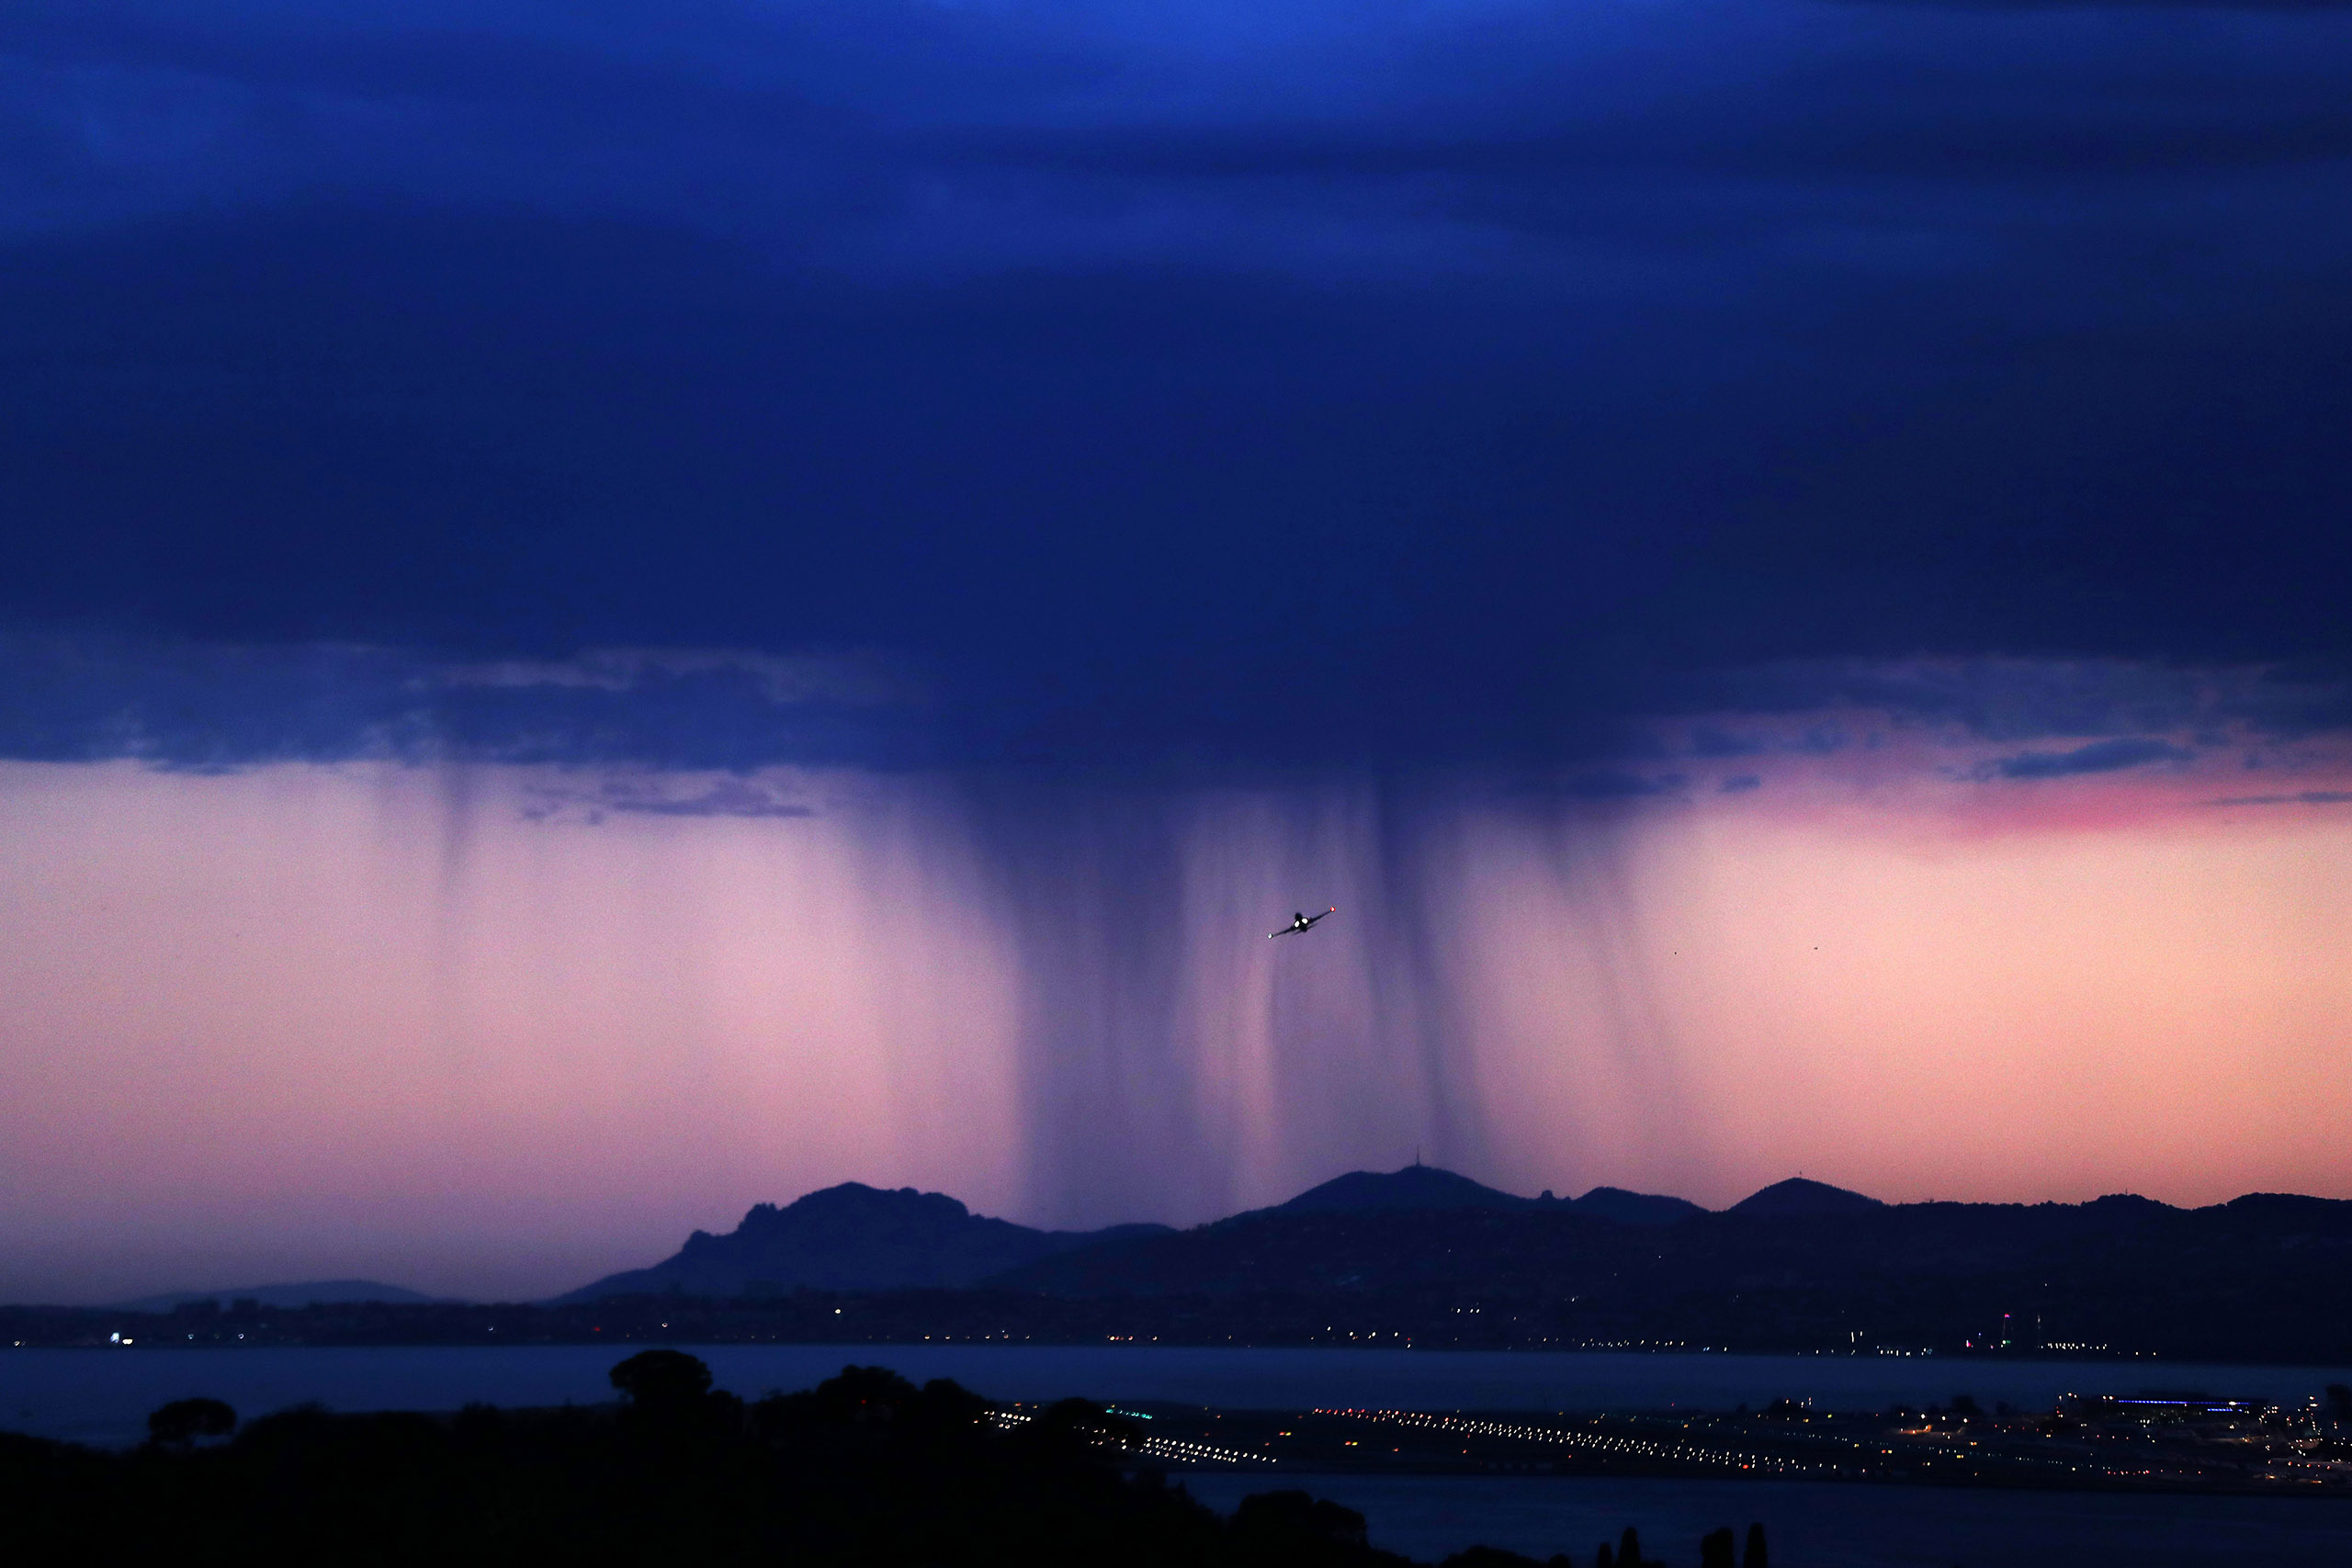 An approaching storm looming over the French riviera city of Nice, in southeastern France, on July 14, 2016.